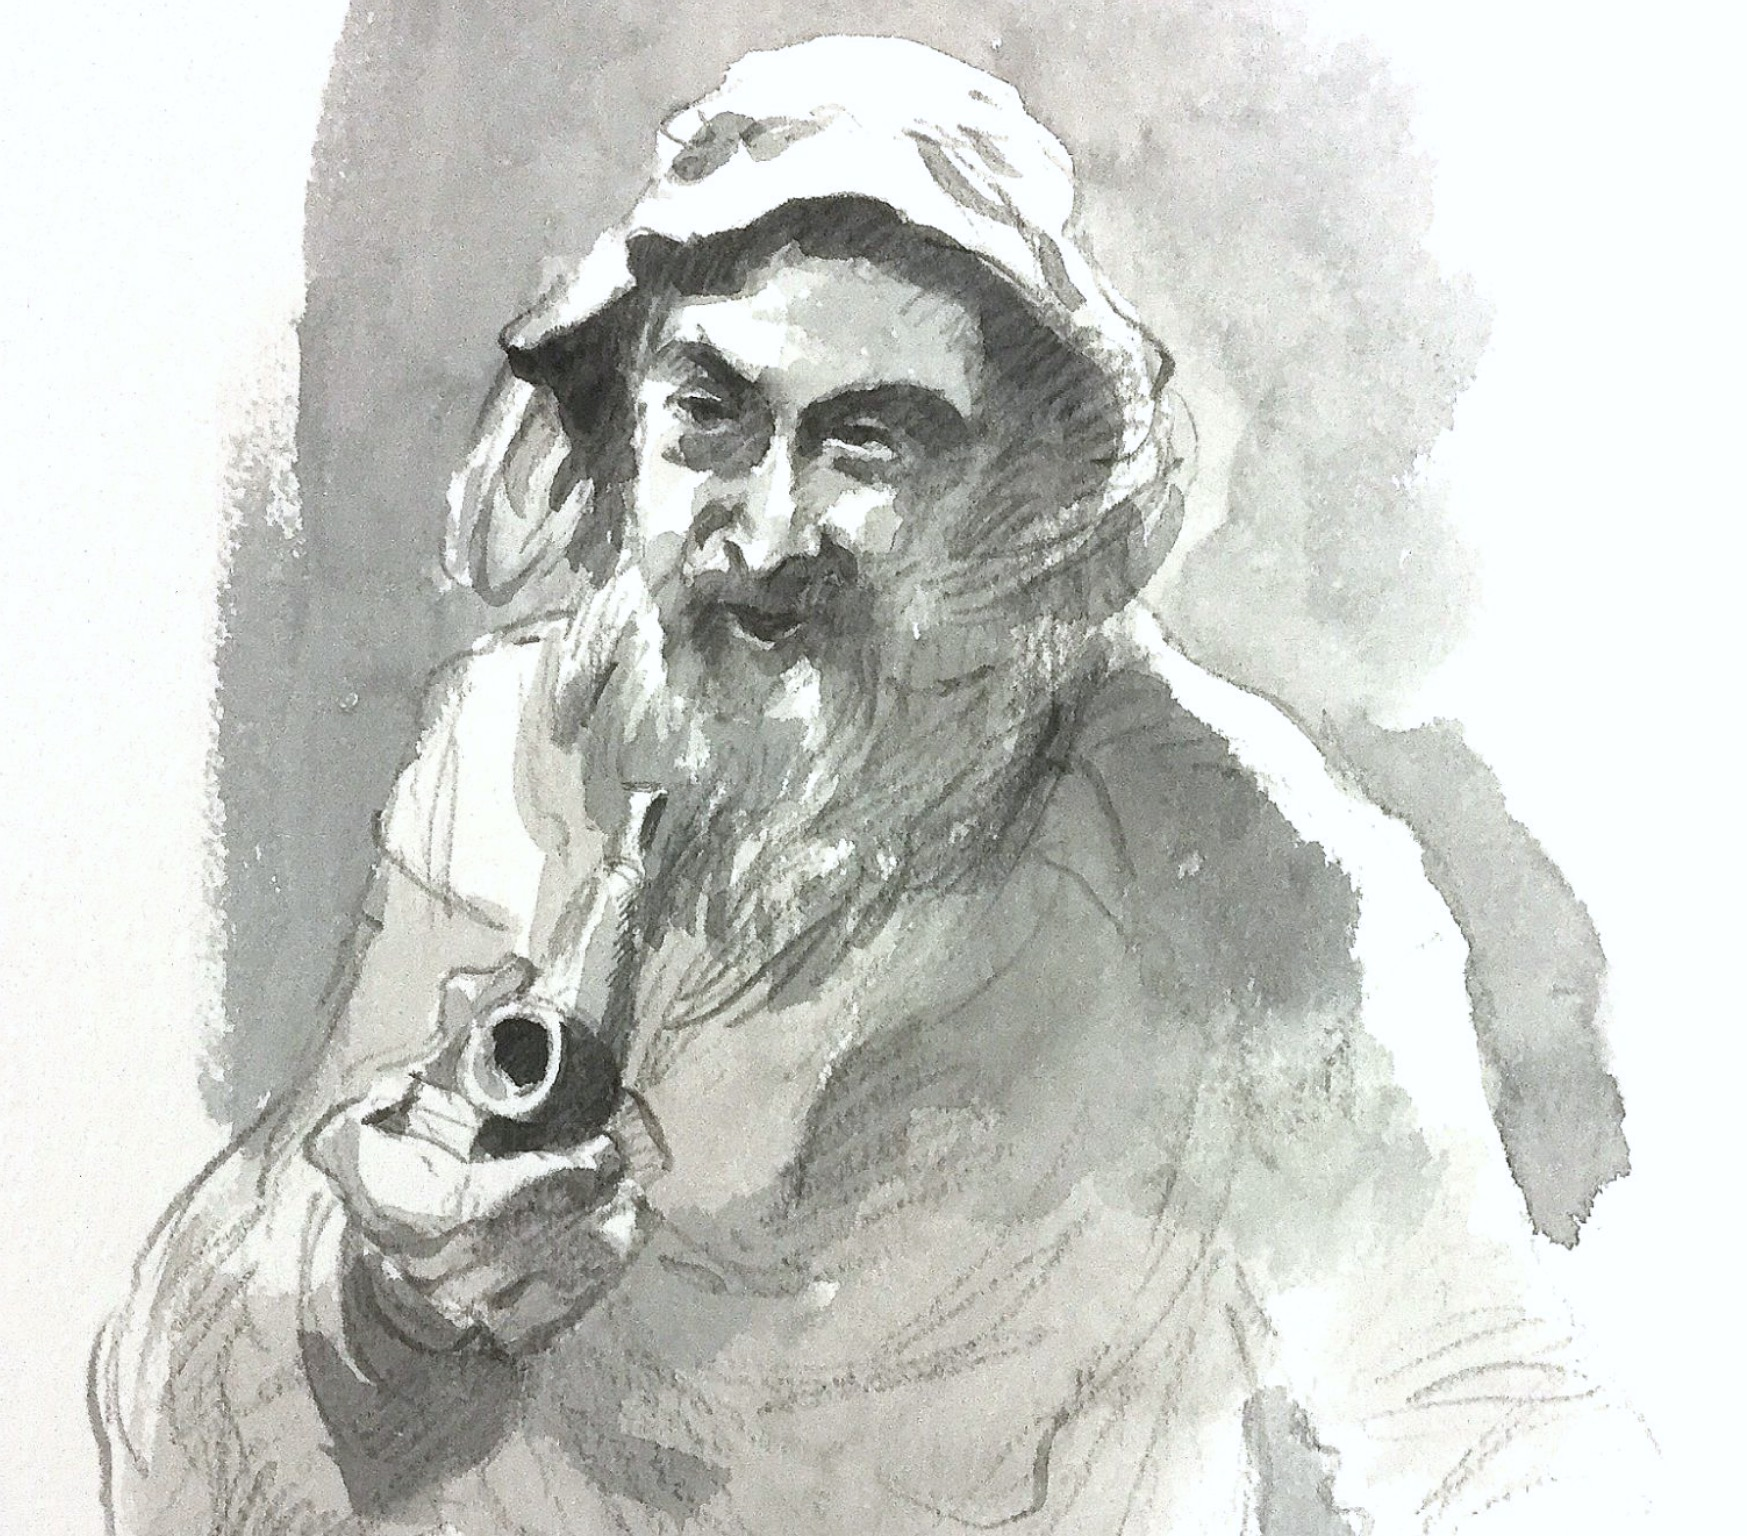 Pipe Smoker Sketch, original art by Trevor Waugh